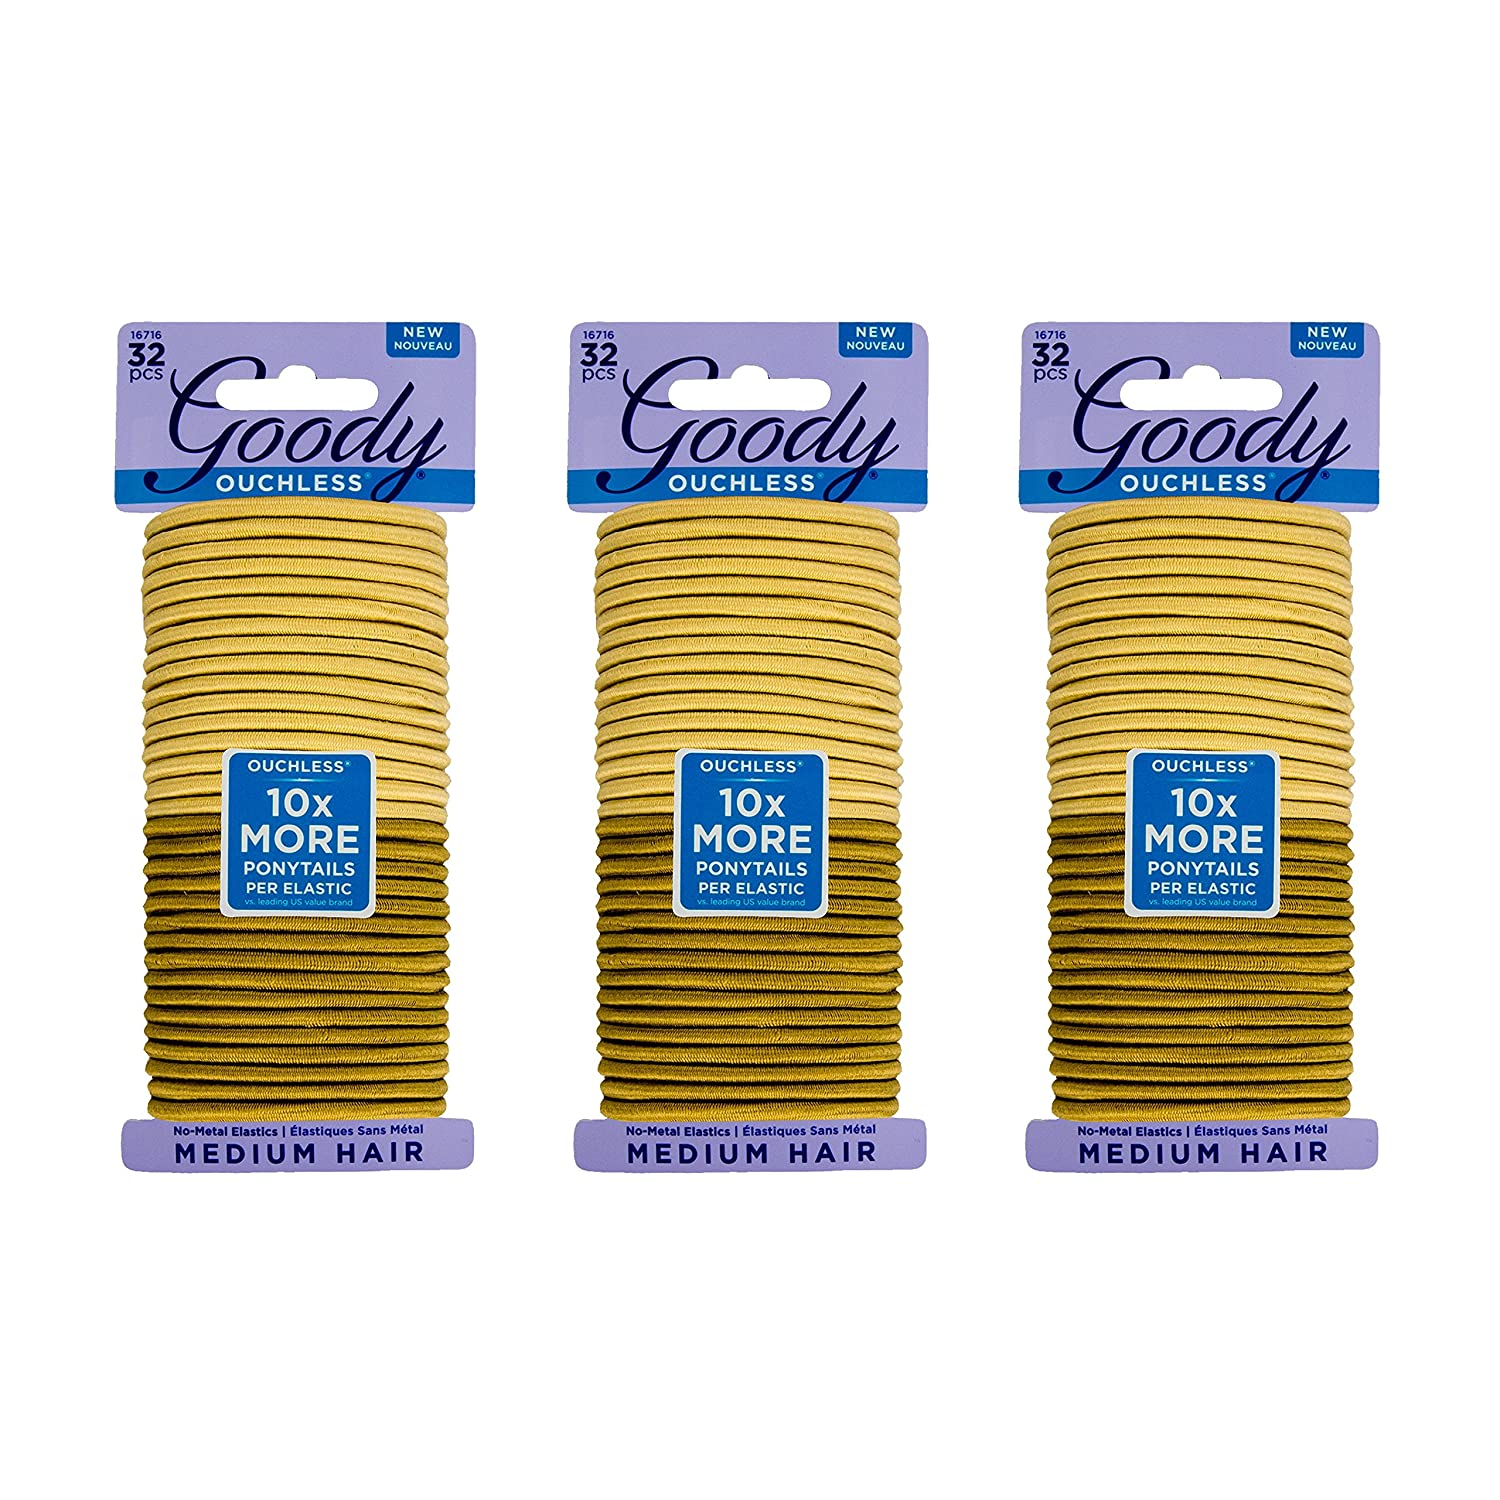 Goody Ouchless Women's Braided Elastics, Blondes, (96 CT Total/Pack of 3) 4MM for Medium Hair 30041457167169